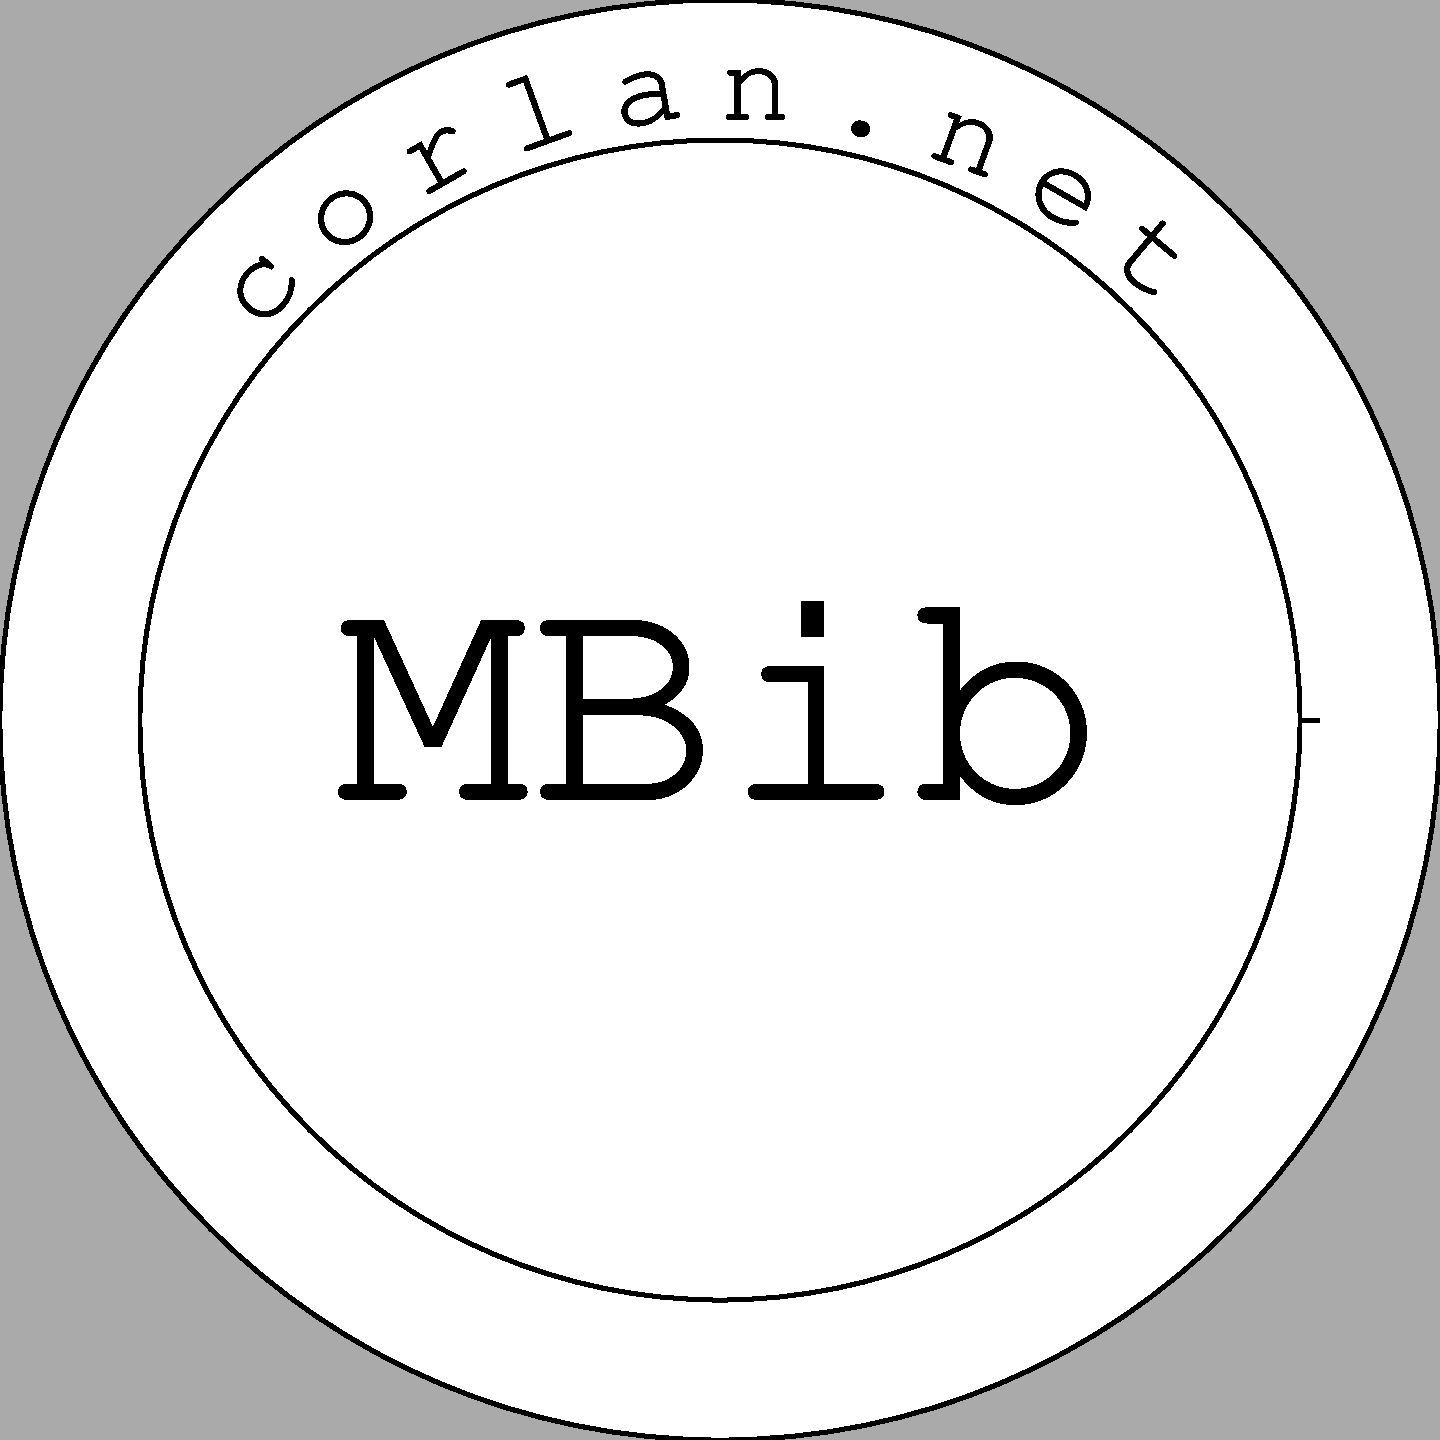 medline-bibtex-corlan.net